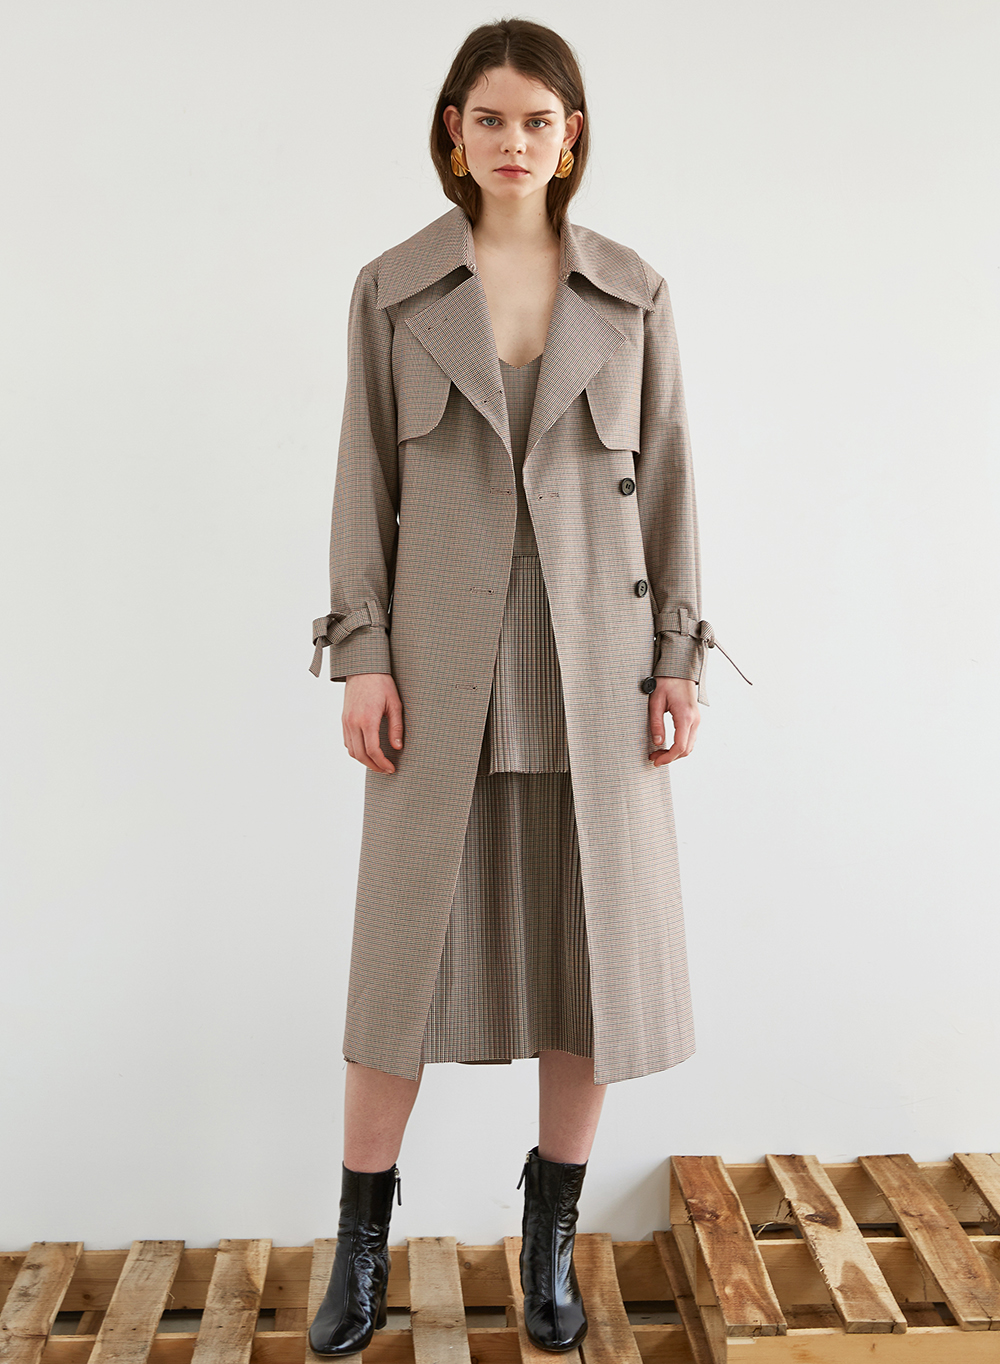 FW18 TRENCH COAT